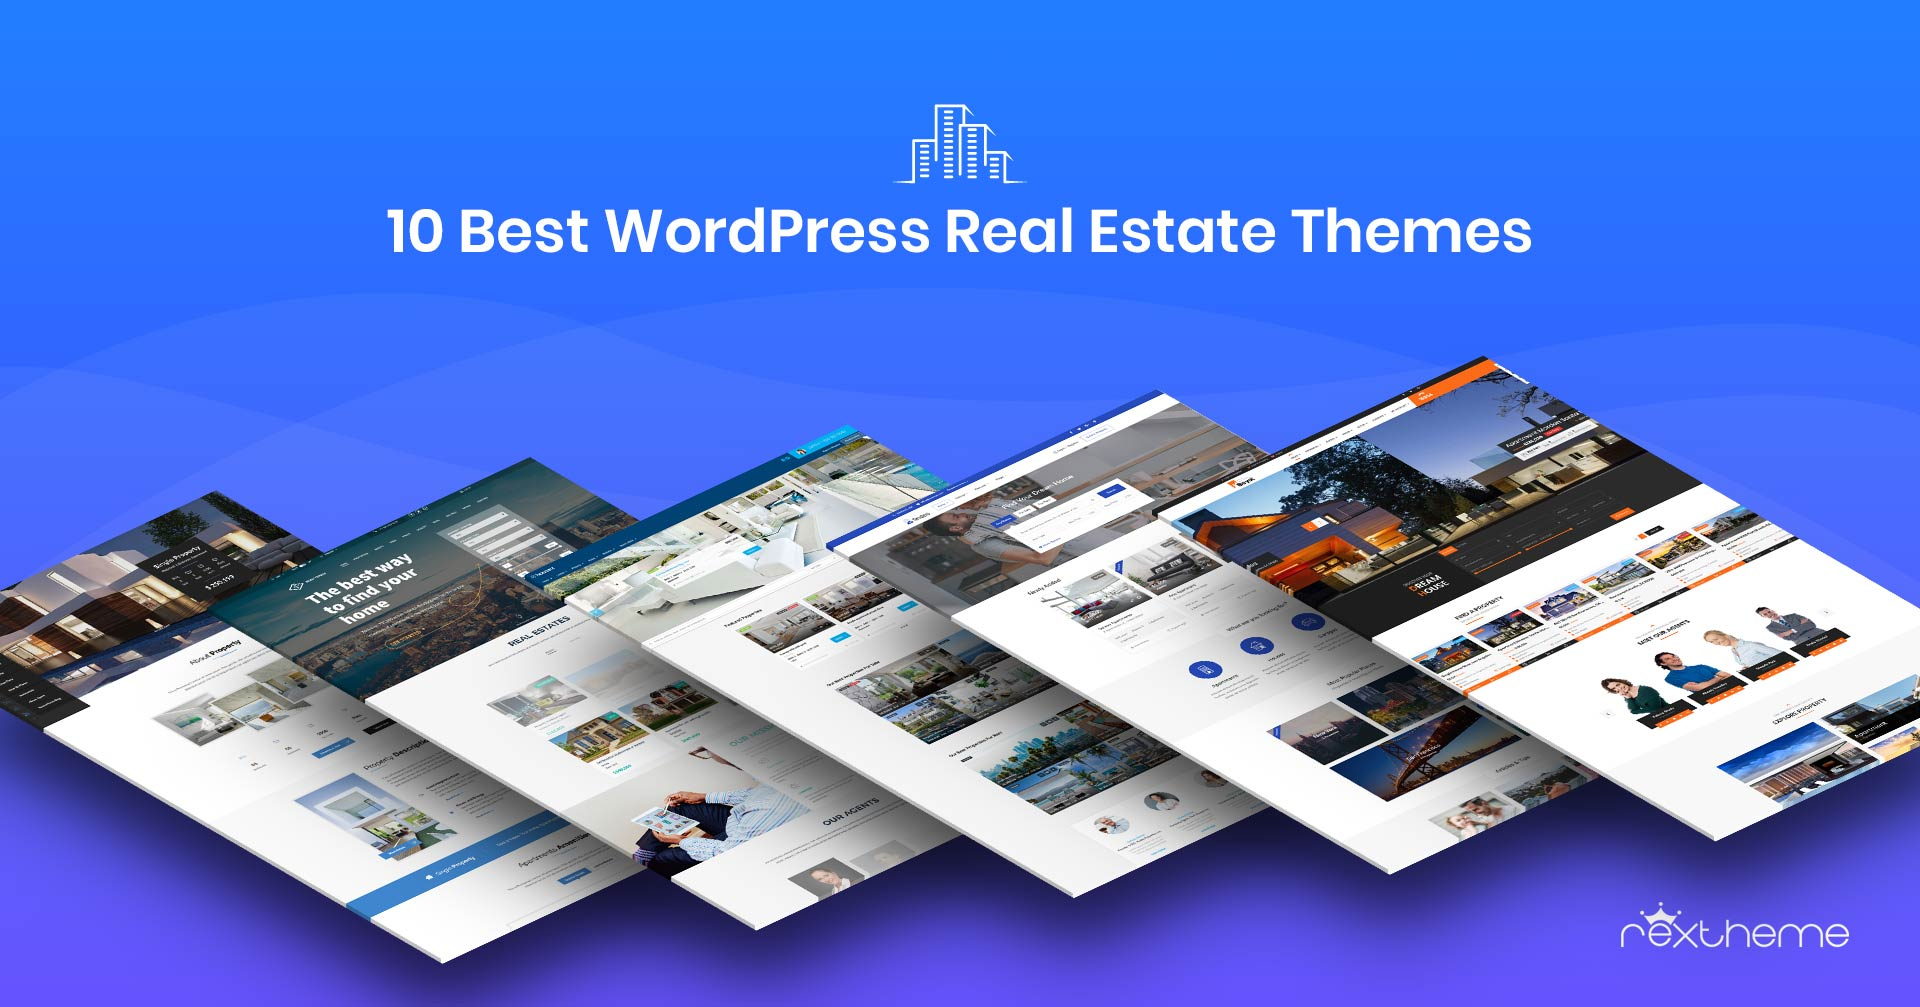 10 Best WordPress Real Estate Themes